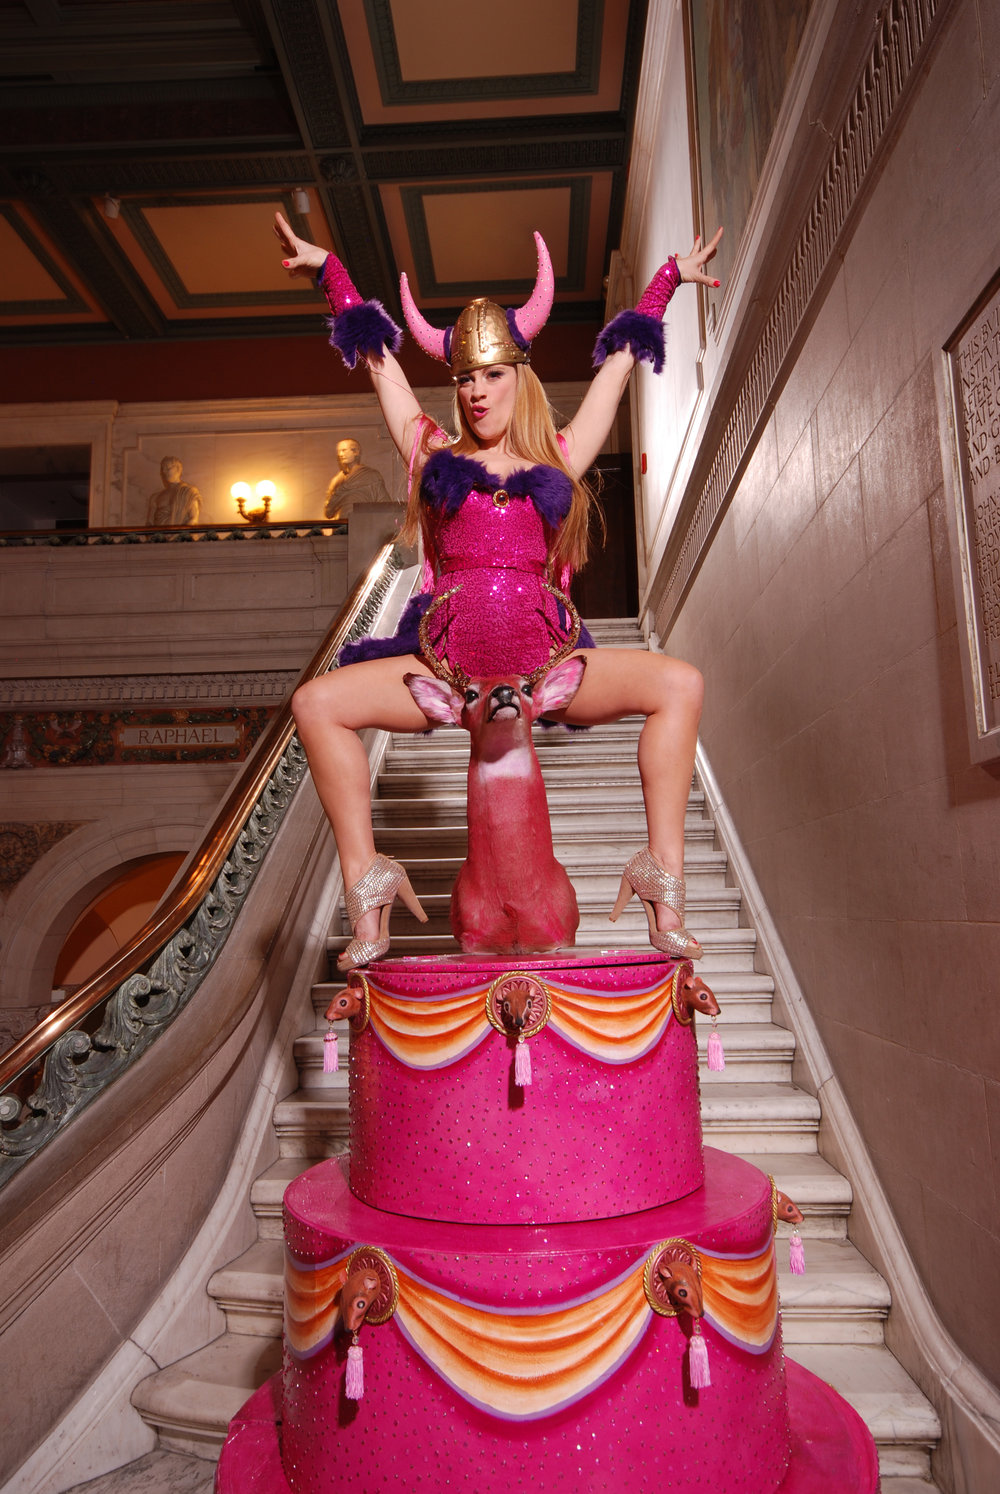 Trixie promoting her  Viking  performance, MICA's Historic Main Building, Baltimore, Maryland, 2010, Photo by Mike Lee